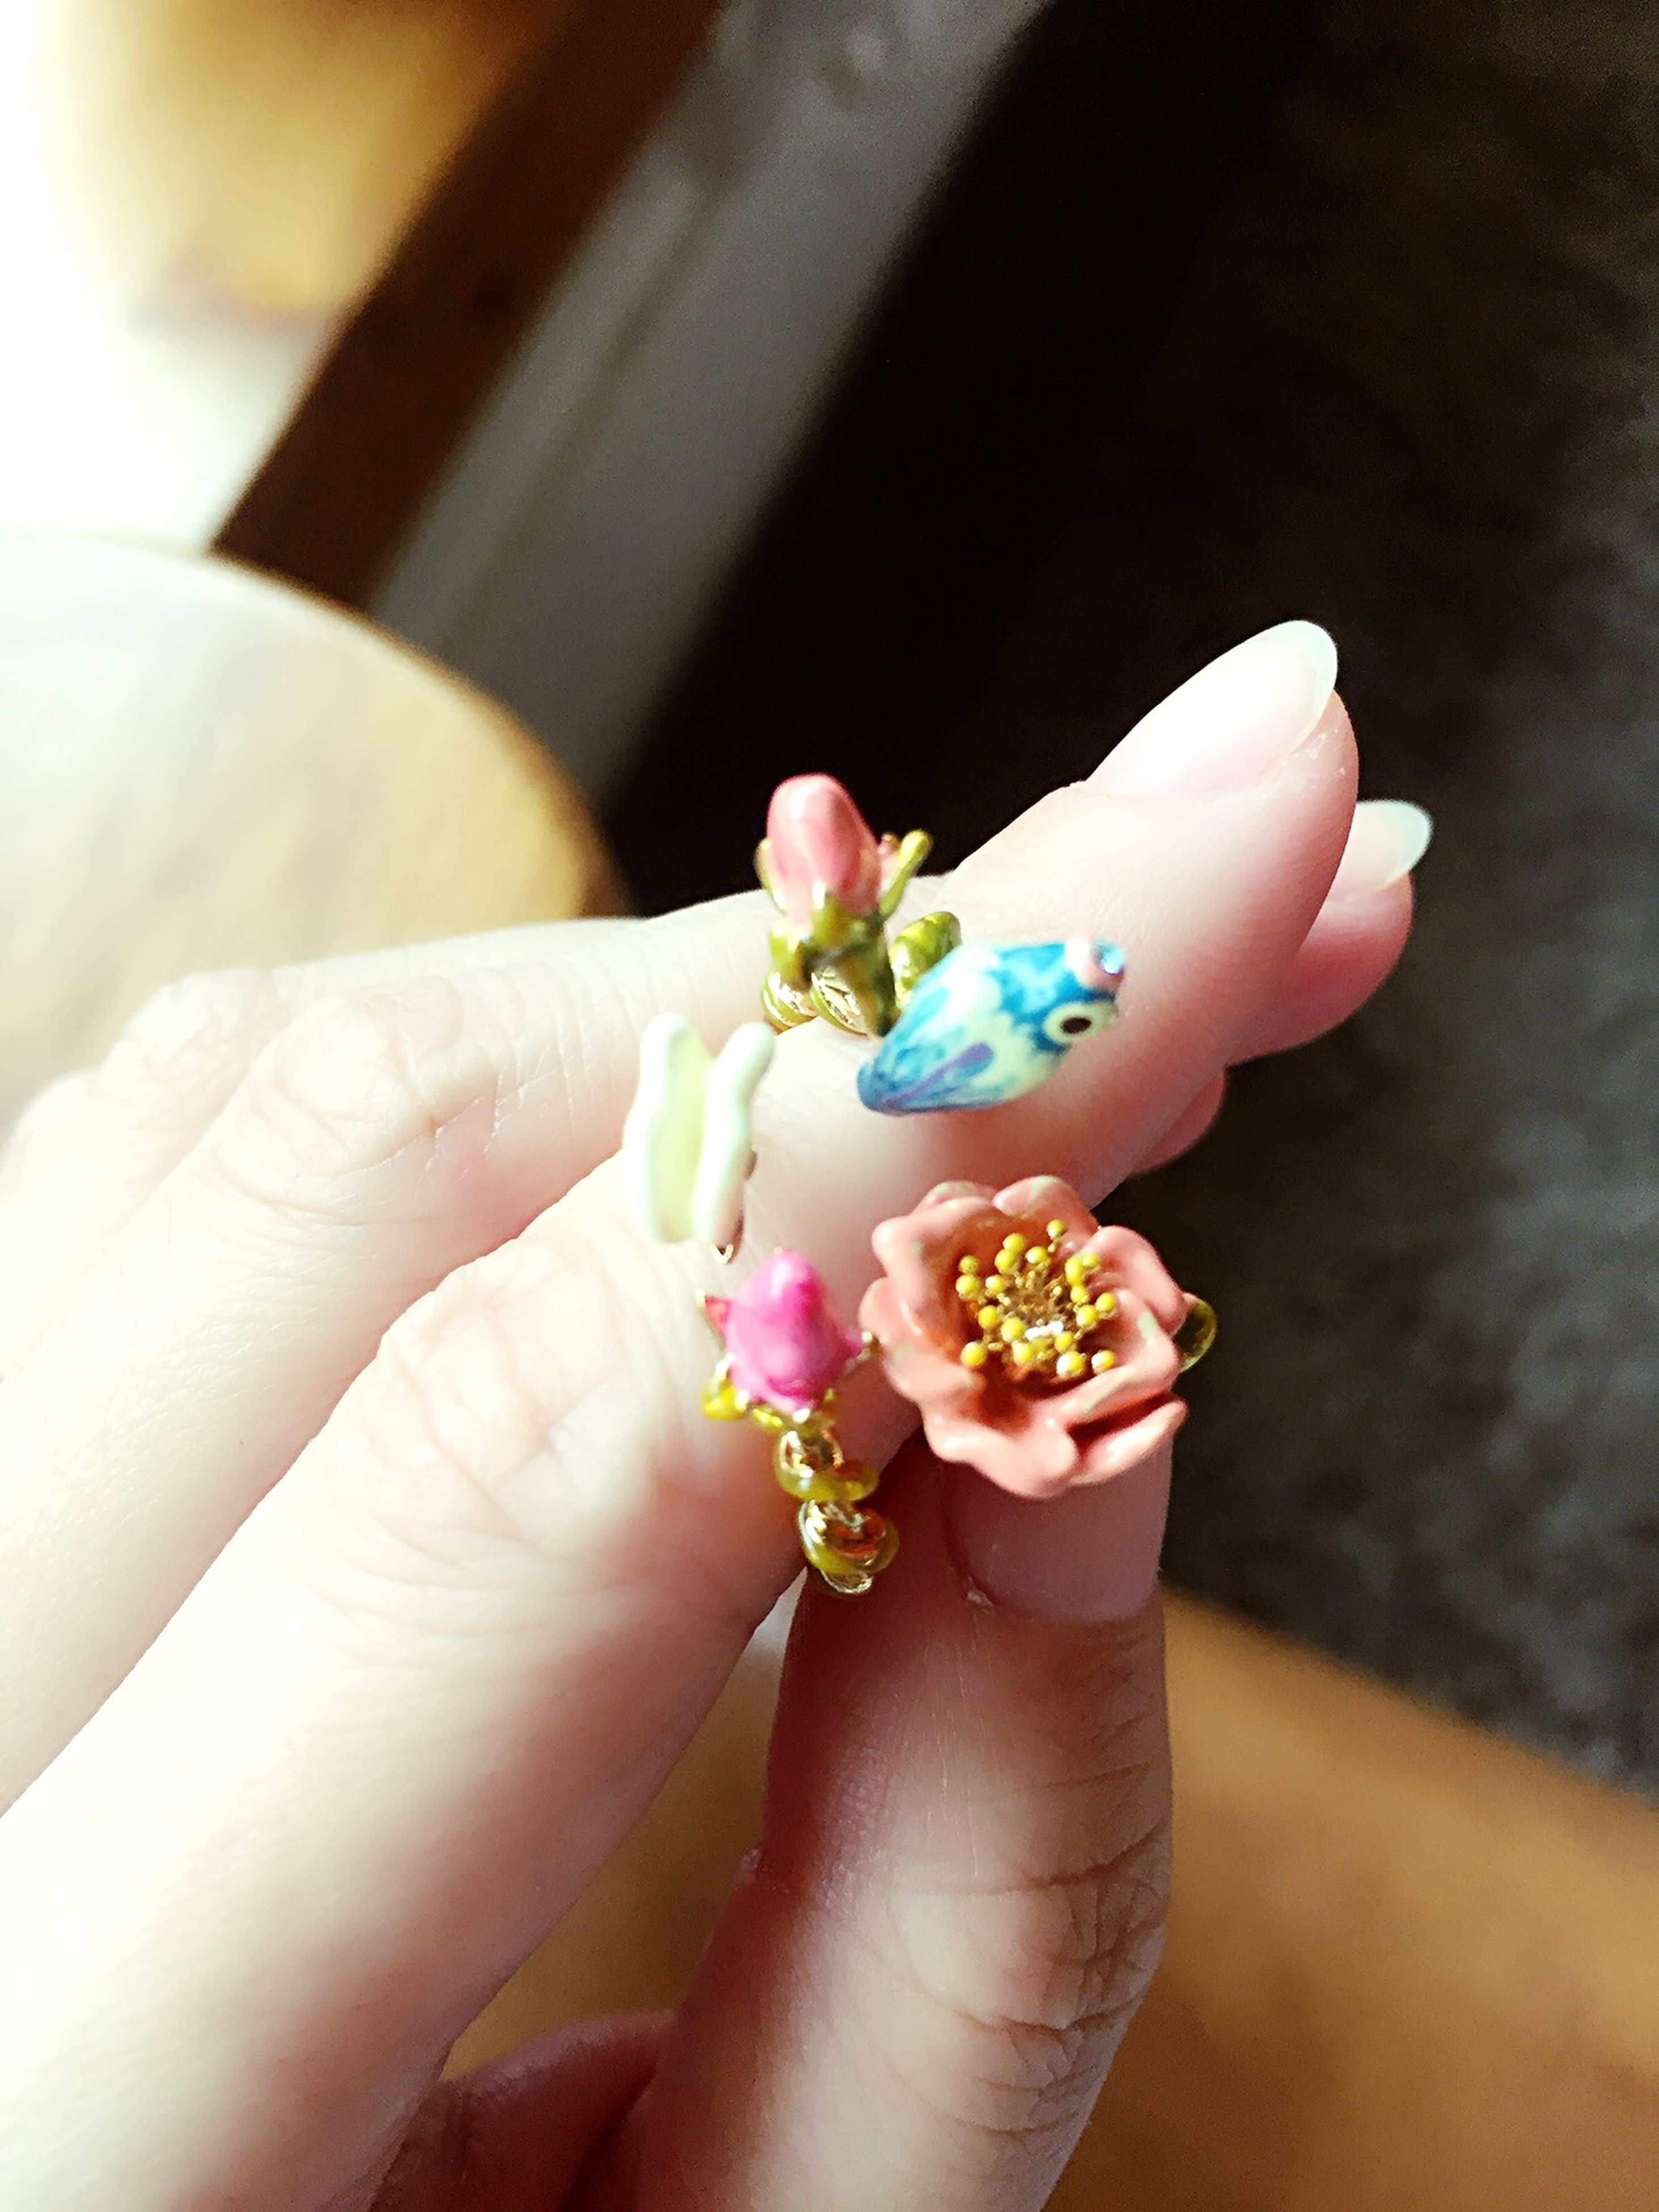 person, flower, holding, part of, human finger, indoors, petal, lifestyles, cropped, personal perspective, freshness, fragility, close-up, flower head, focus on foreground, leisure activity